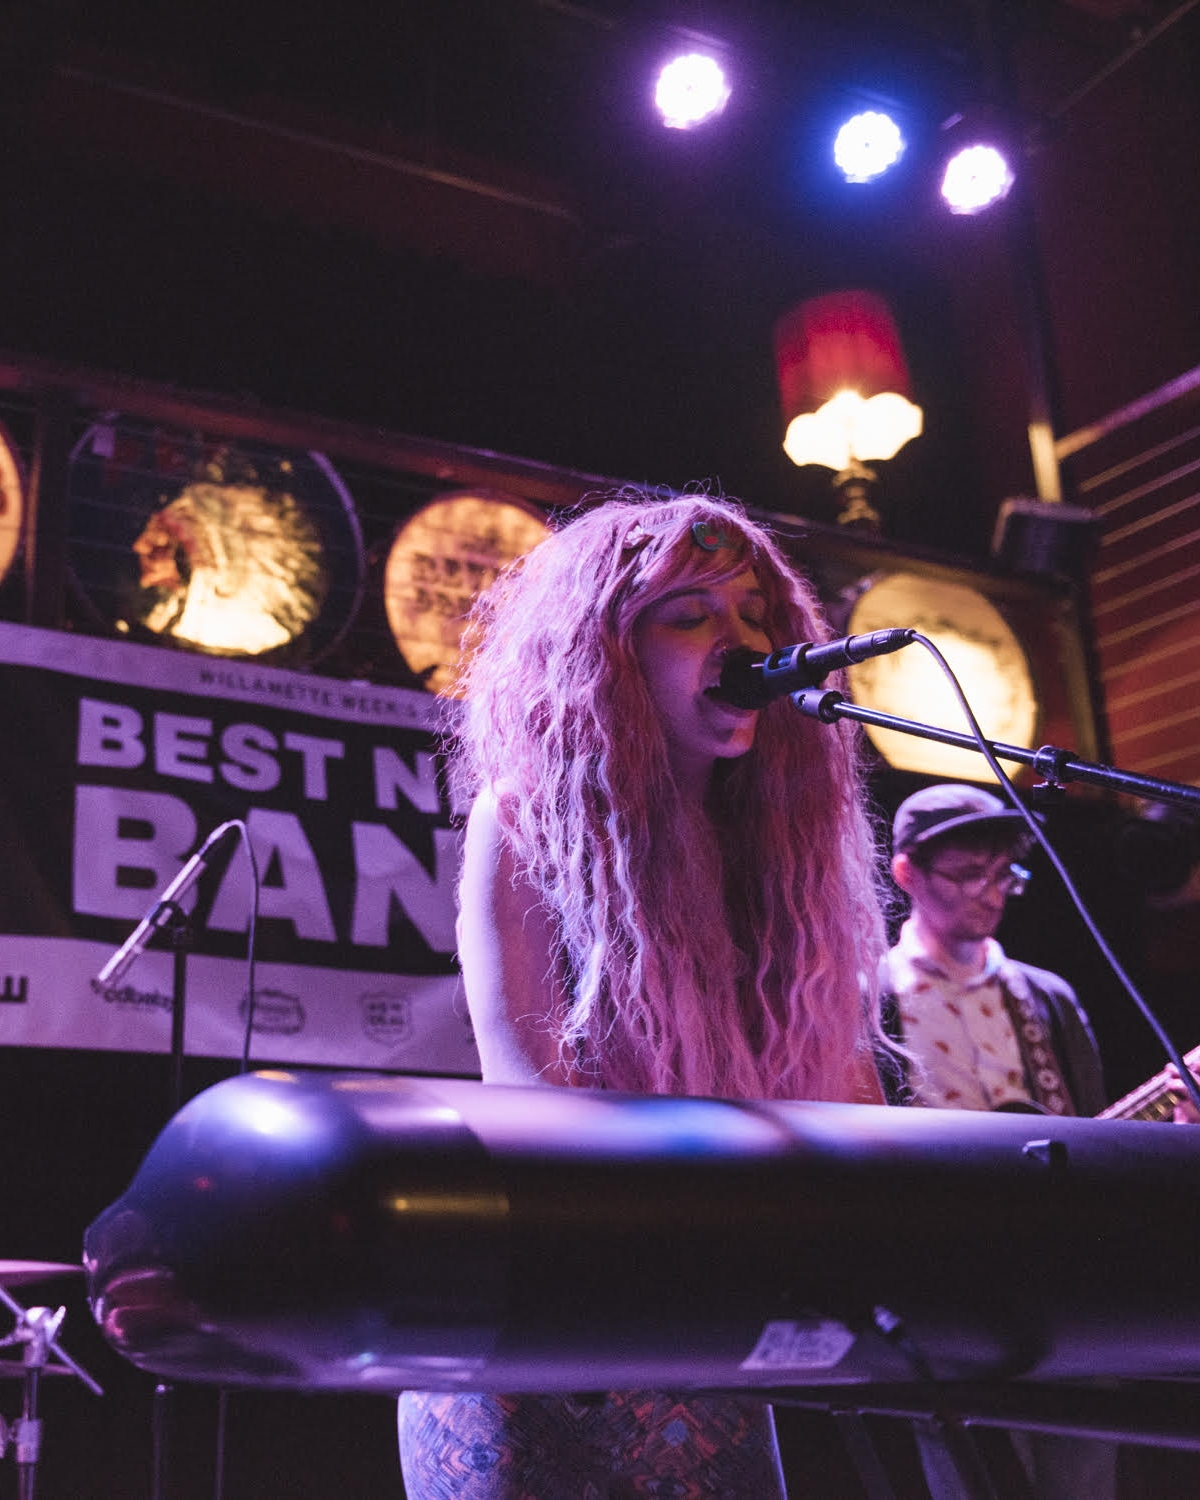 BEST NEW BAND CONCERT - We gather the top picks for a free concert at Mississippi Studios.